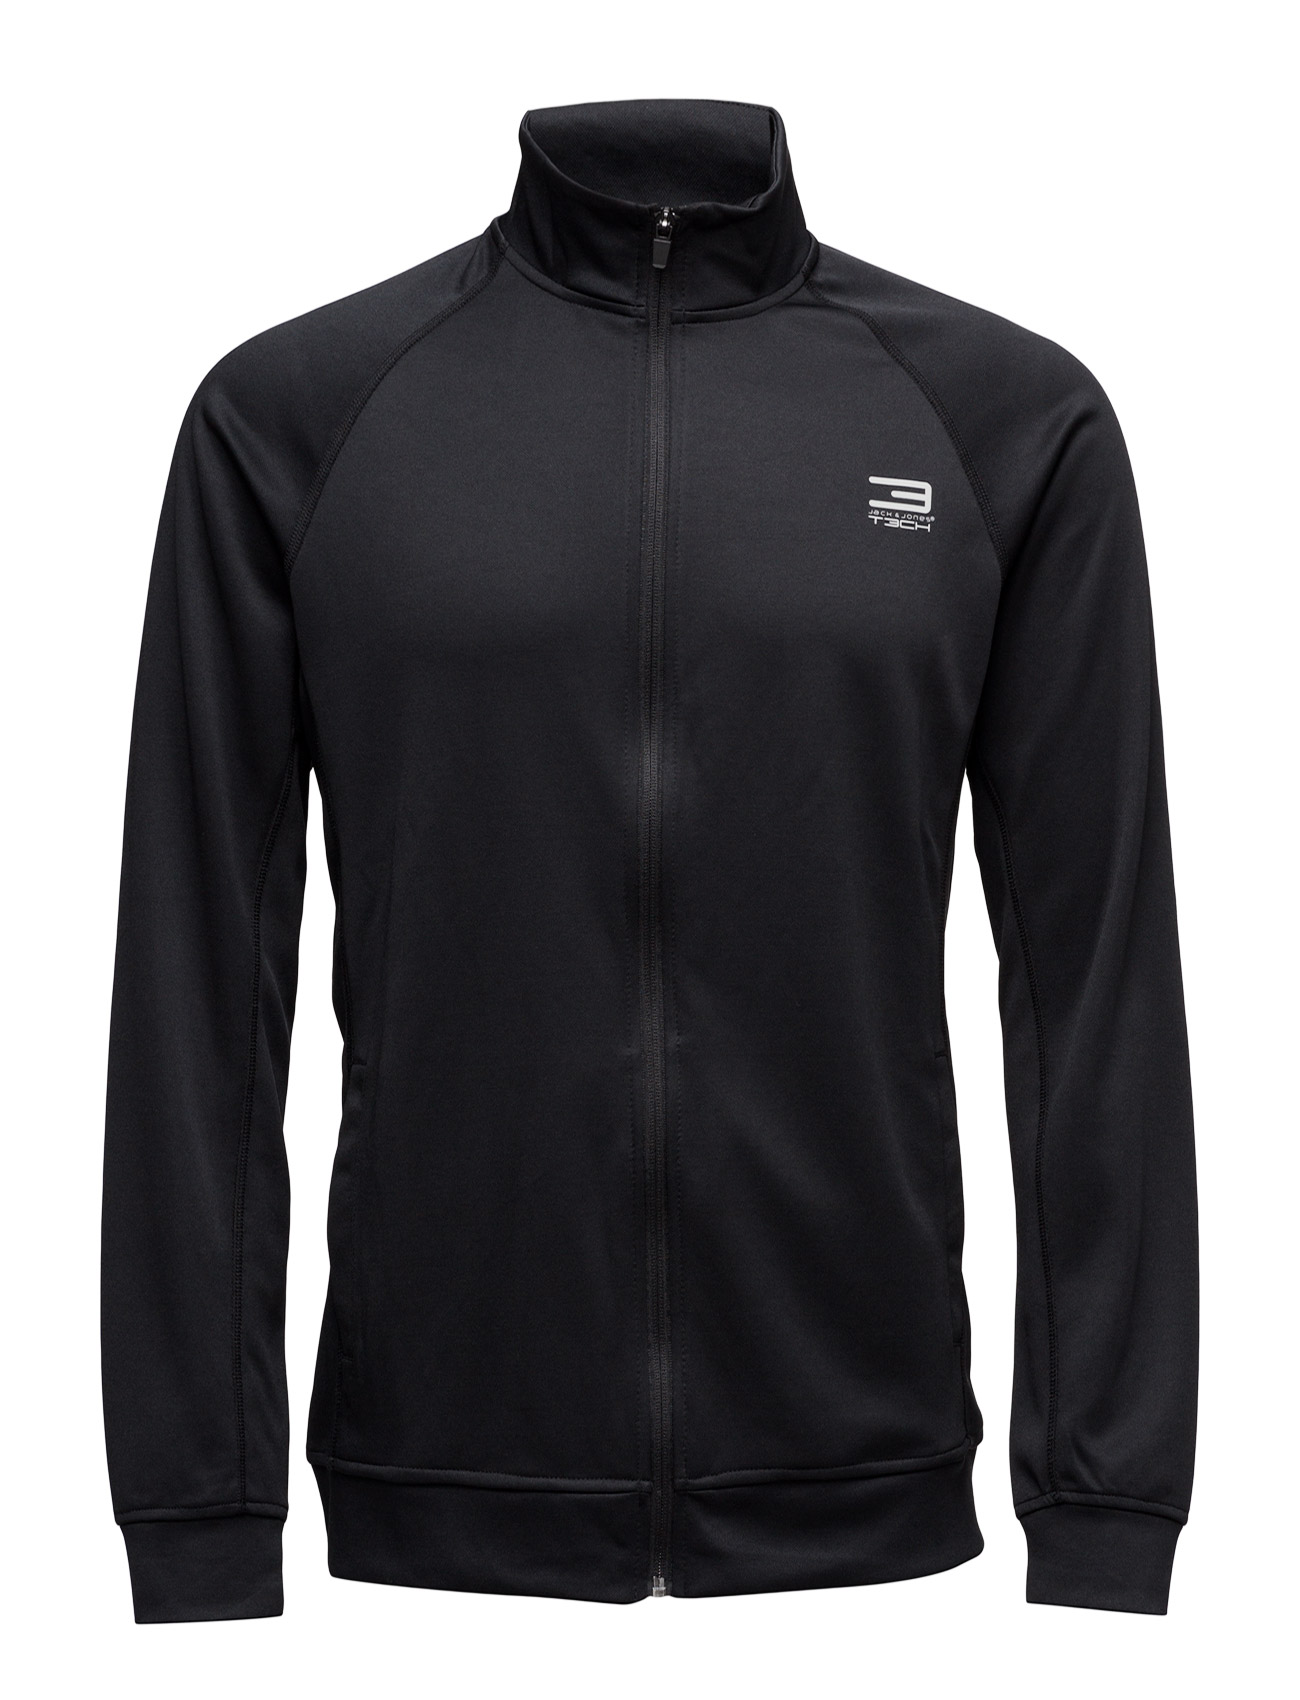 jack & jones tech – Jjttraining19 track jacket på boozt.com dk